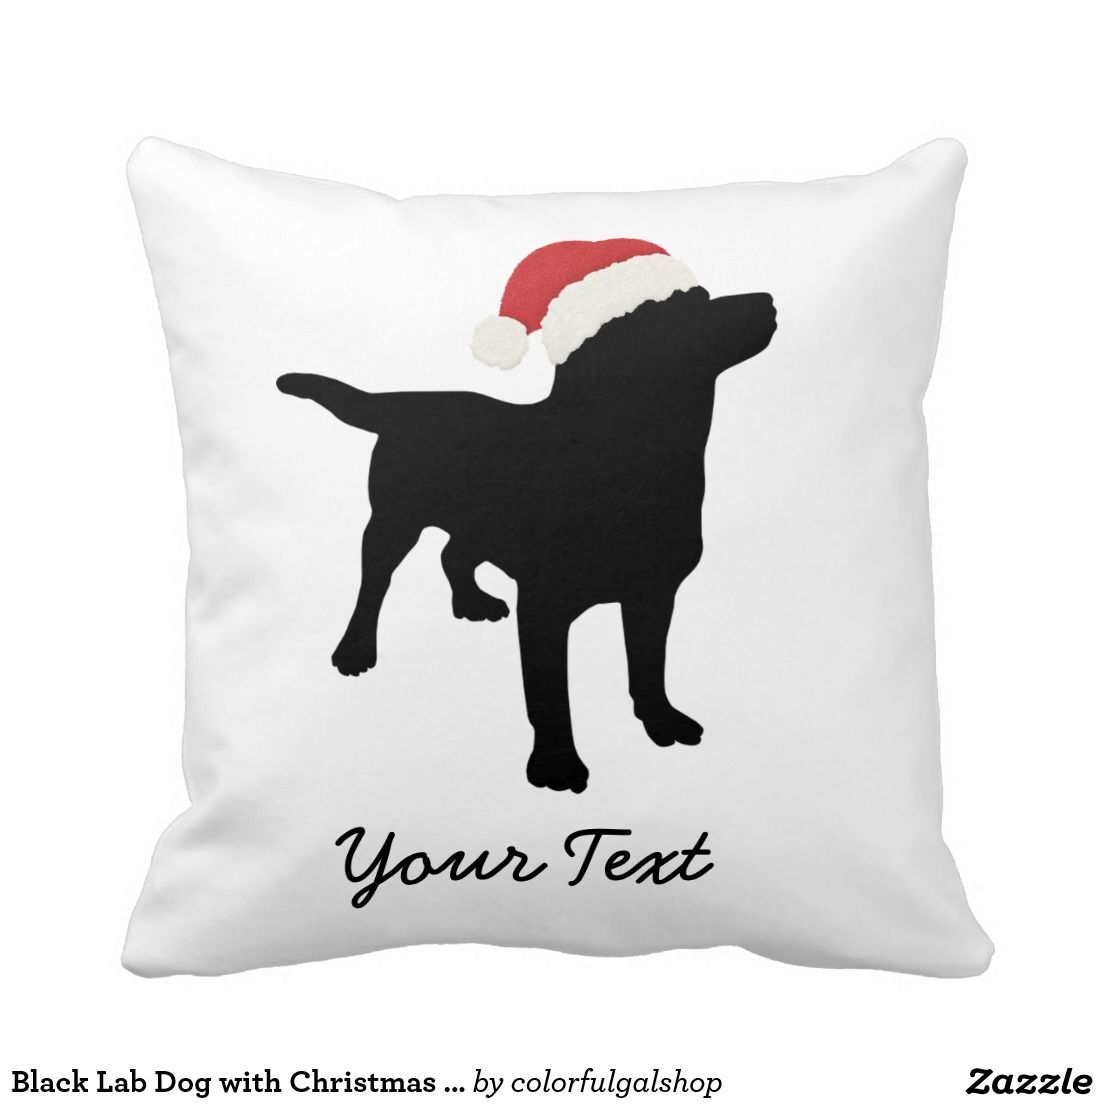 Black Lab Dog with Christmas Santa Hat Pillows